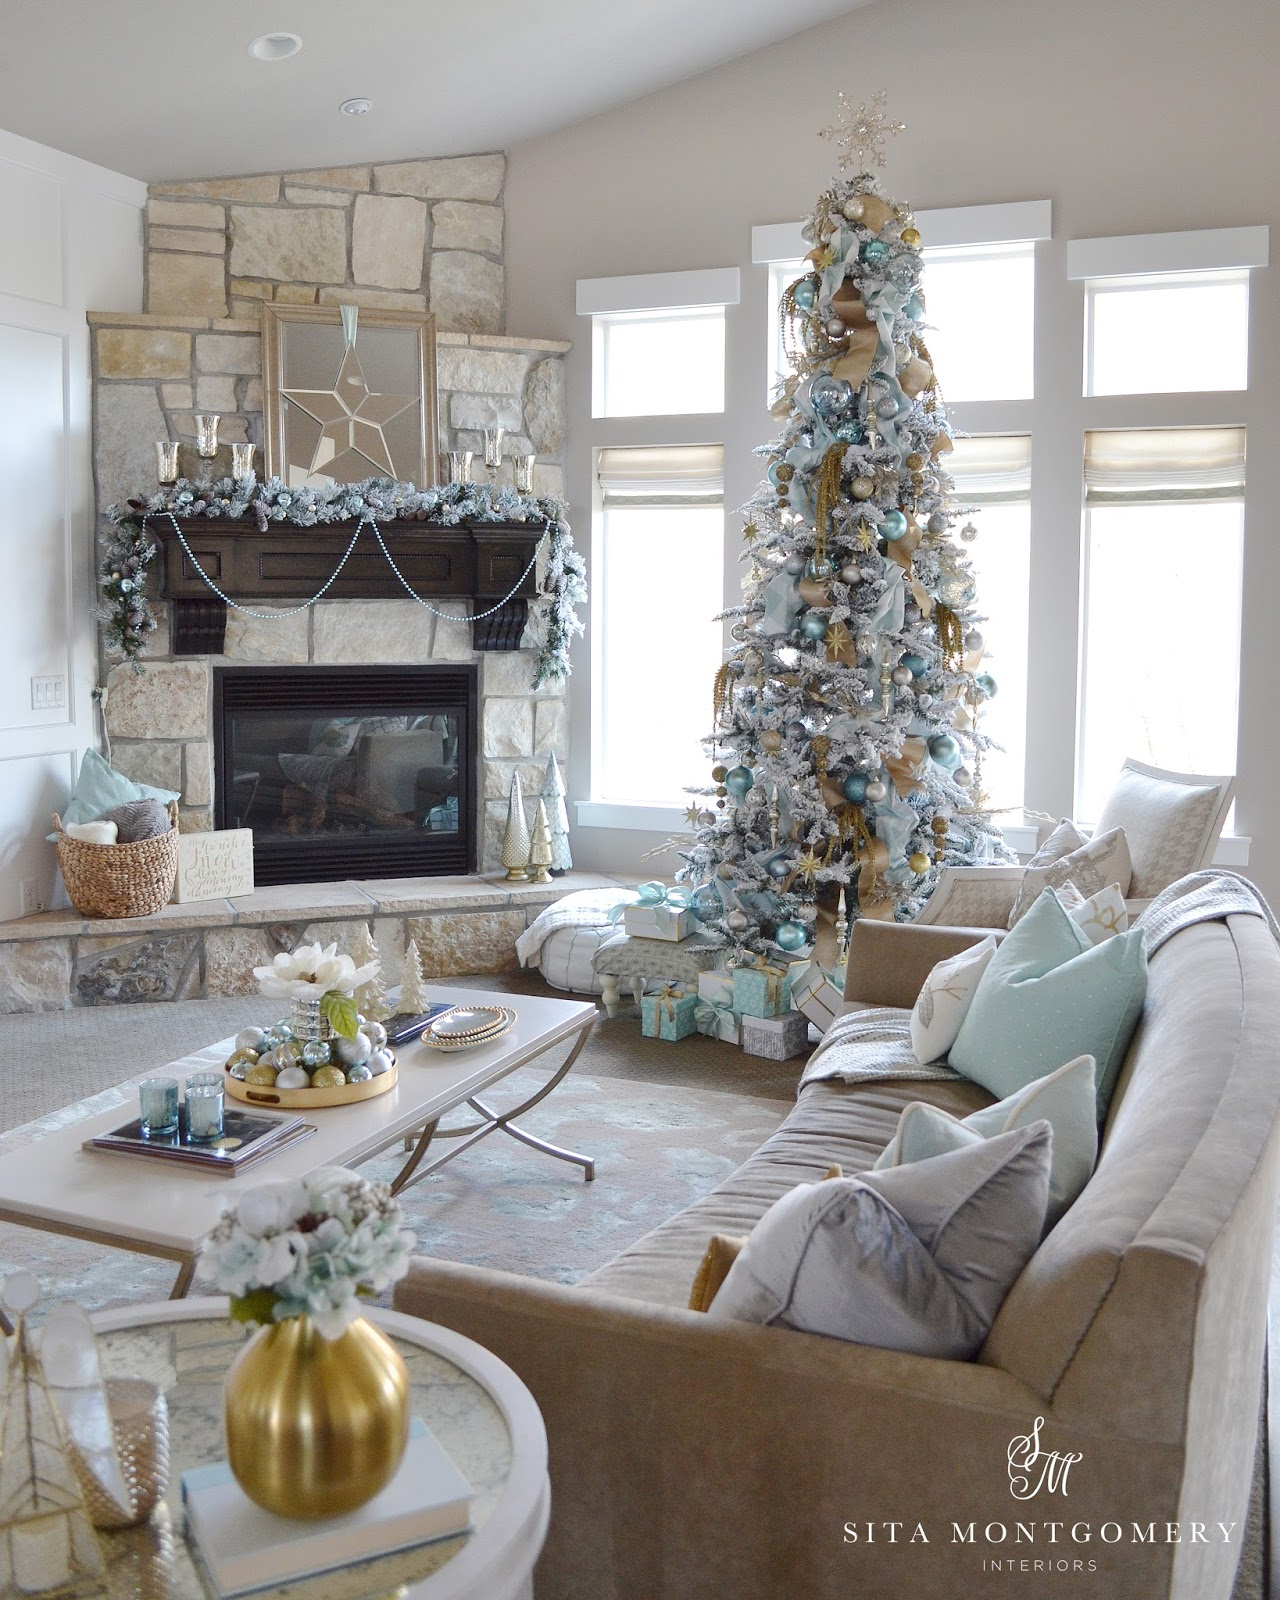 A Holiday With Heart Blog Hop Sita Montgomery Interiors